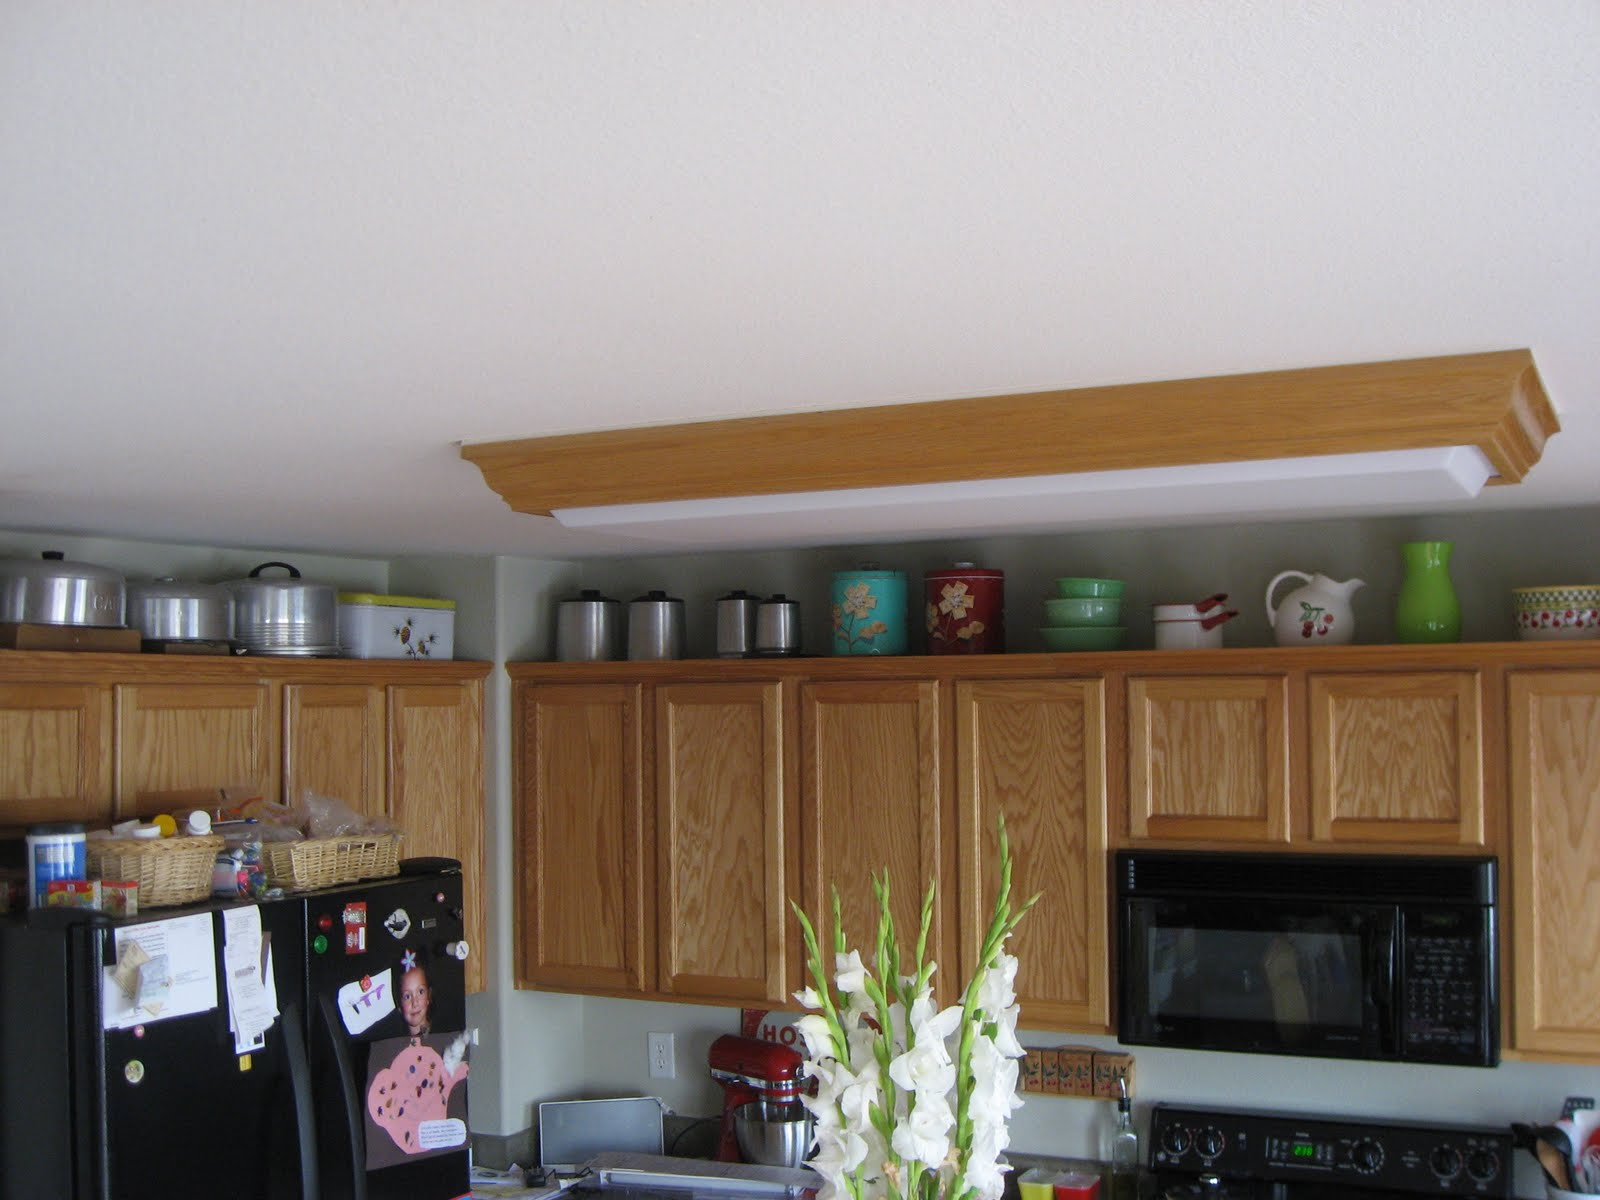 Kitchen Design Above Cabinets Lady Goats Decorating Above Kitchen Cabinets